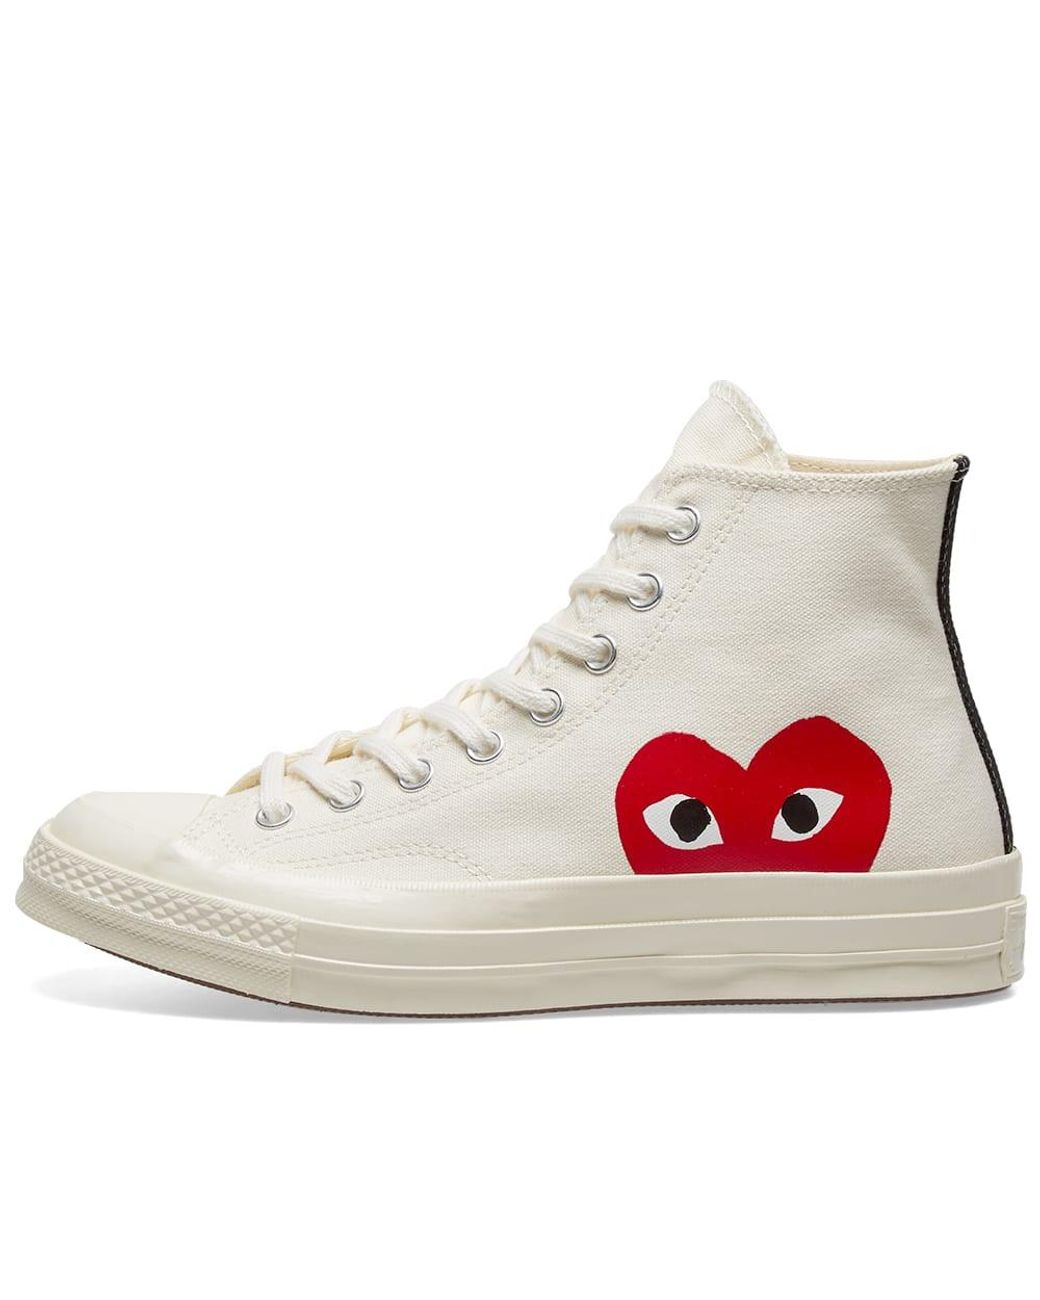 Comme des Garcons PLAY x Converse Chuck Taylor White Foxing For Sale